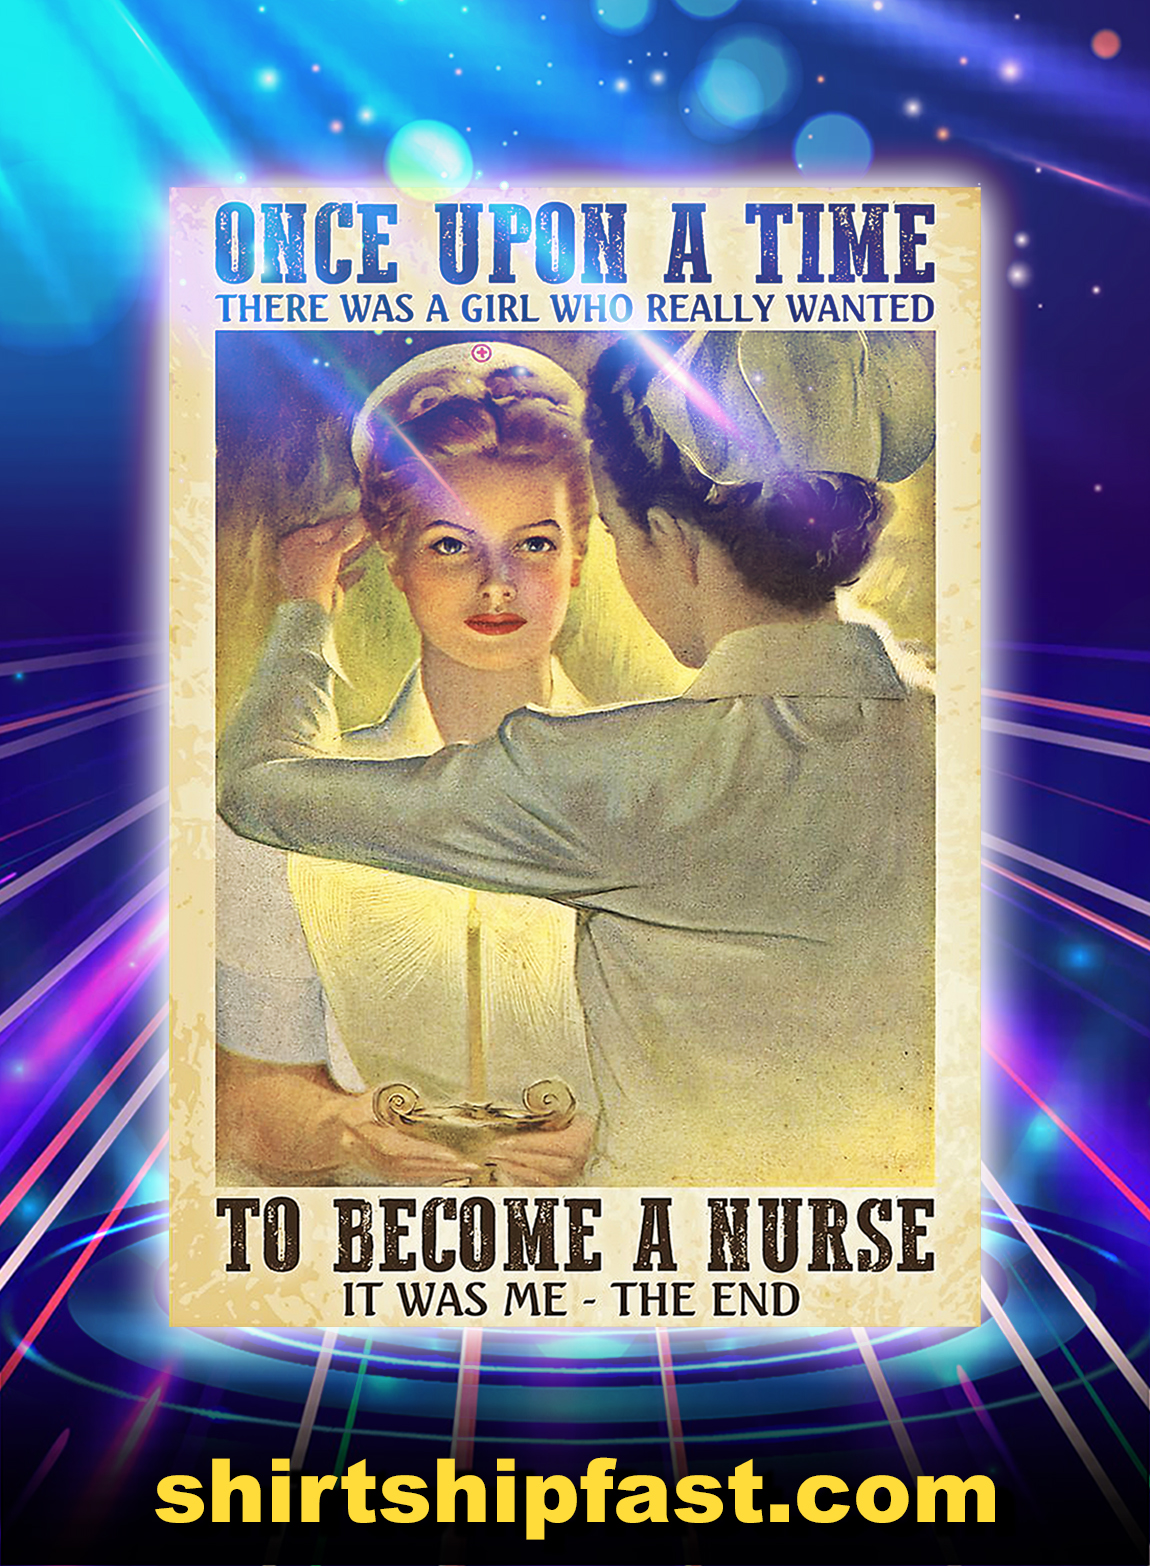 Once upon a time there was a girl who really wanted to become a nurse poster - A3